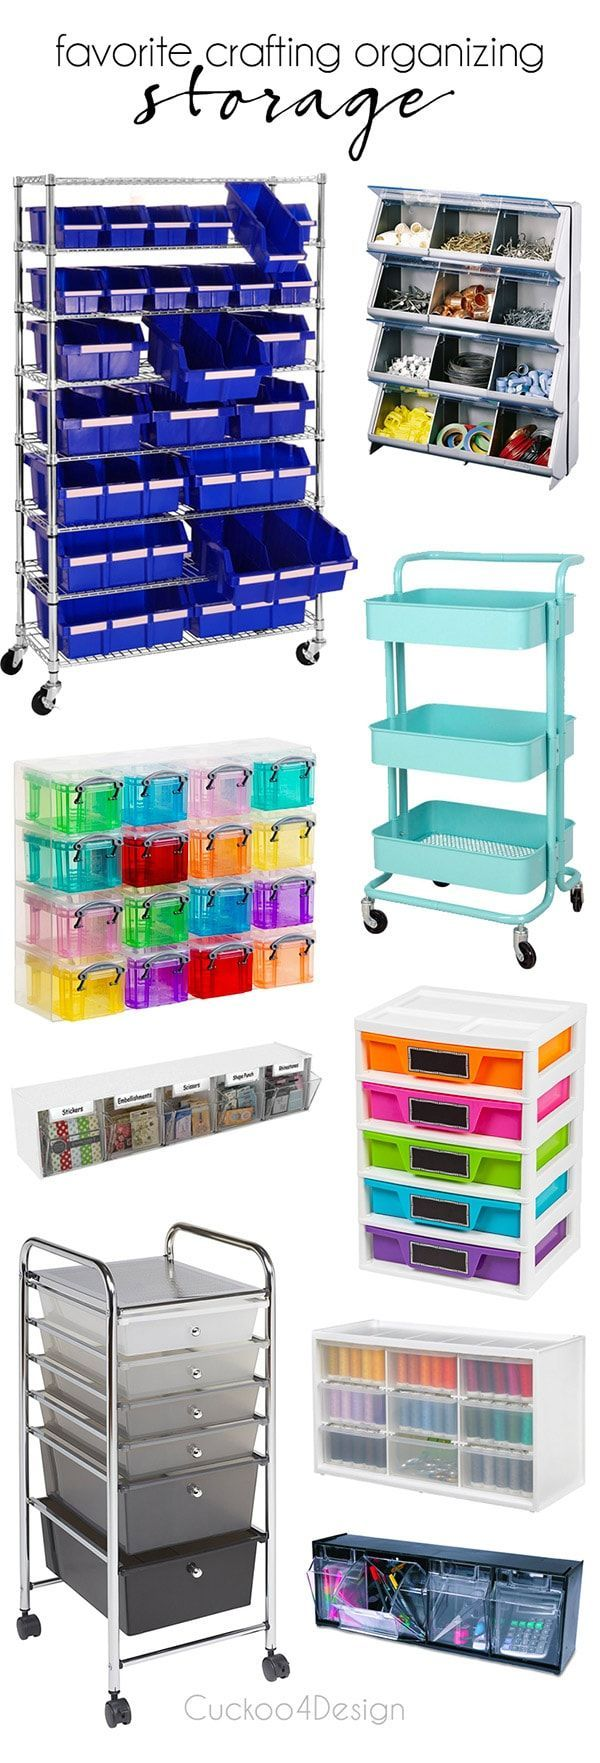 favorite crafting organizing storage | rolling craft cart | rolling storage | craft storage | craft organizing | slime organizing | slime storage | crafting storage | drawer storage | tilt bins | #craftstorage #slimestorage #crafting  via @jakonya